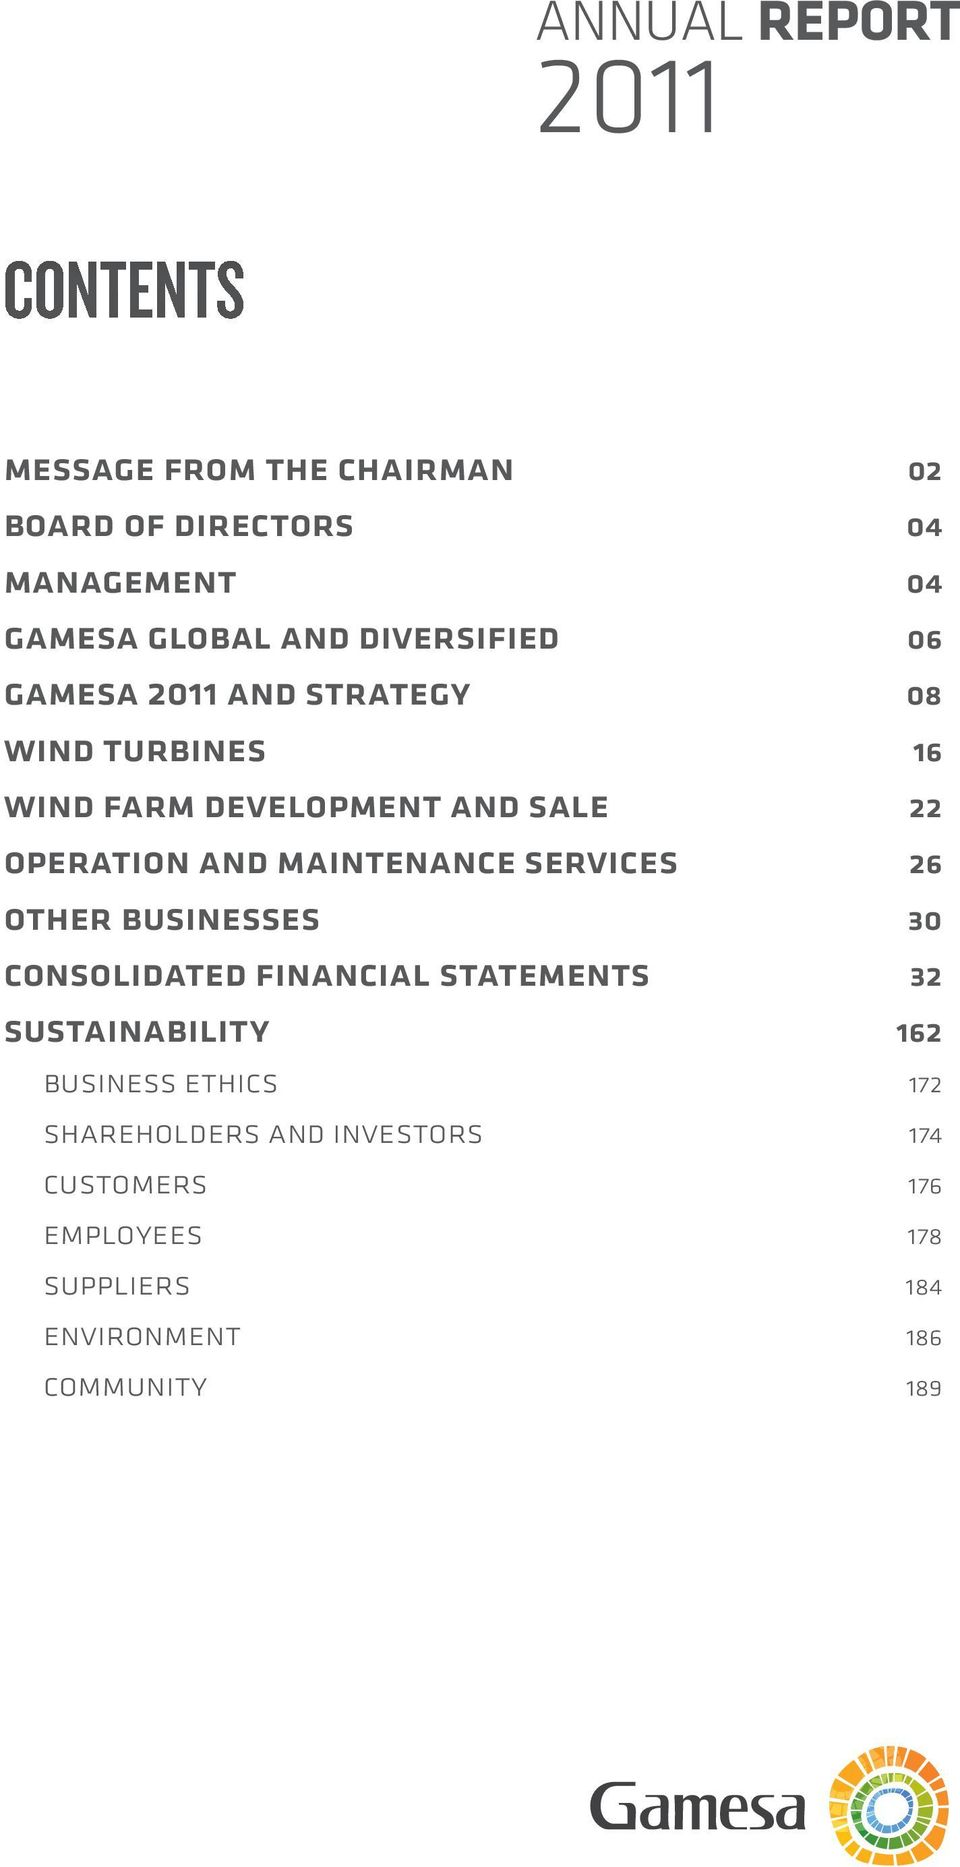 maintenance services 26 other businesses 30 consolidated financial statements 32 sustainability 162 business